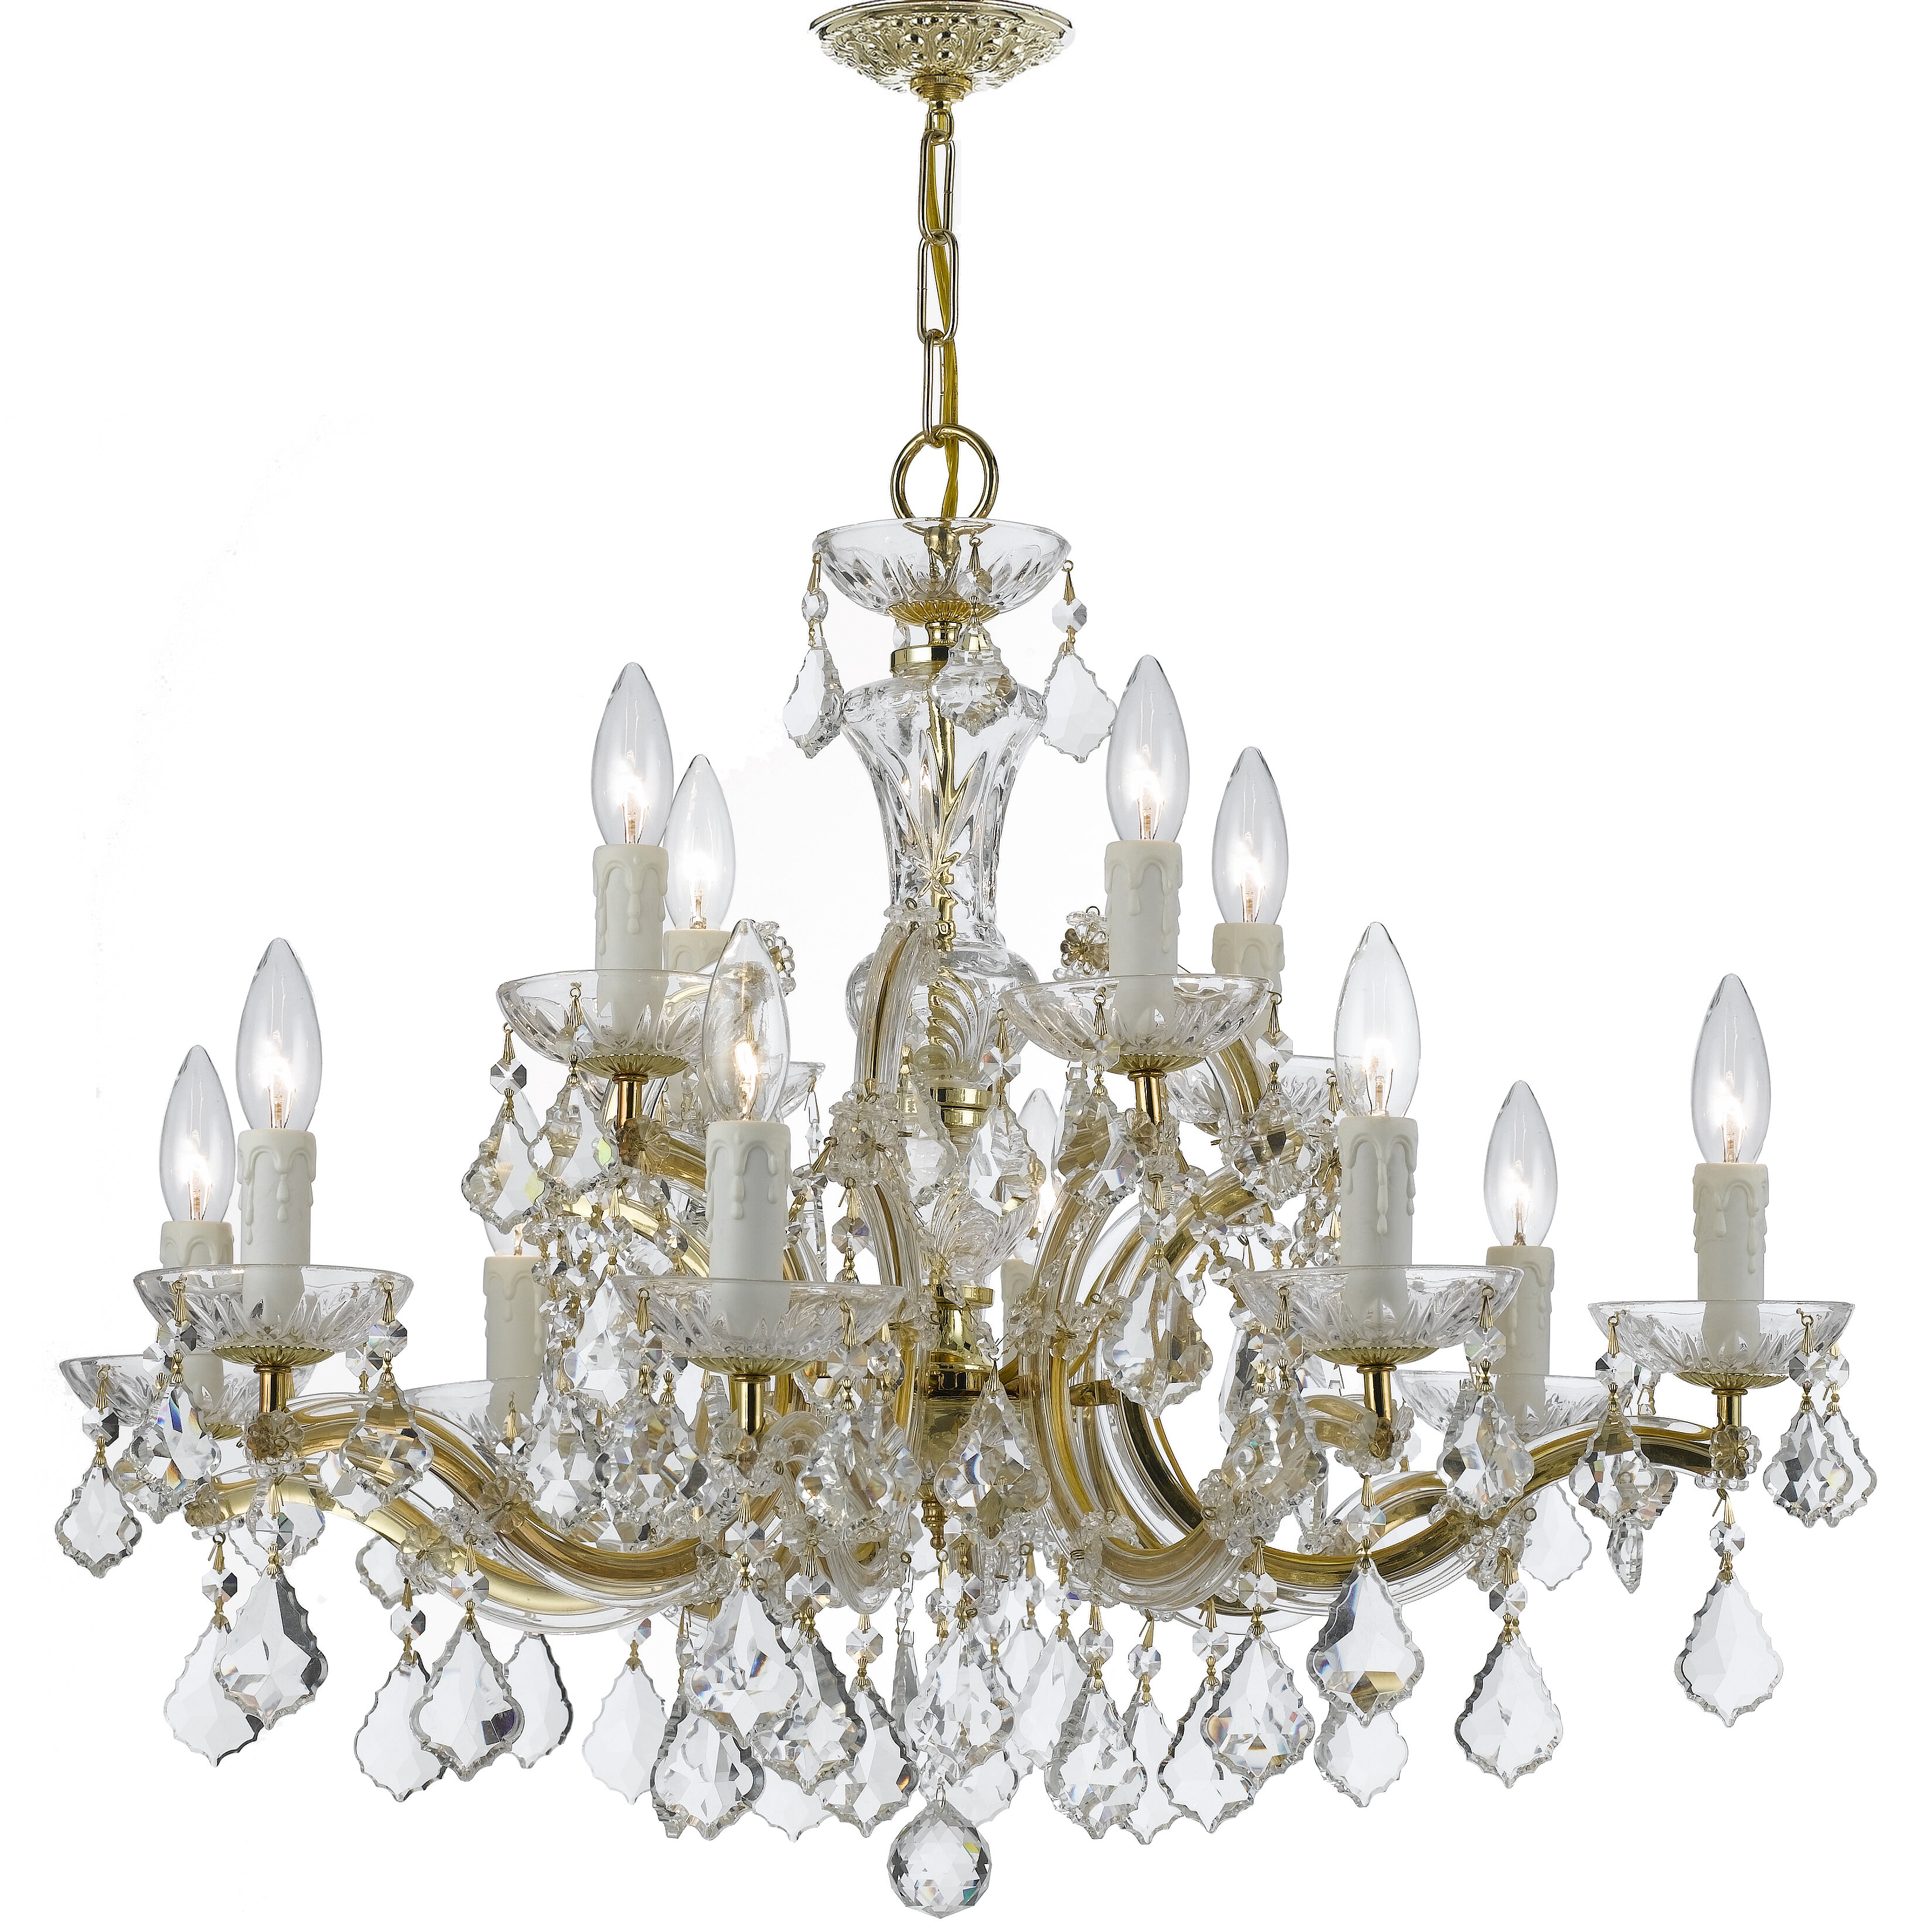 House of Hampton Griffiths 12 Light Crystal Chandelier & Reviews